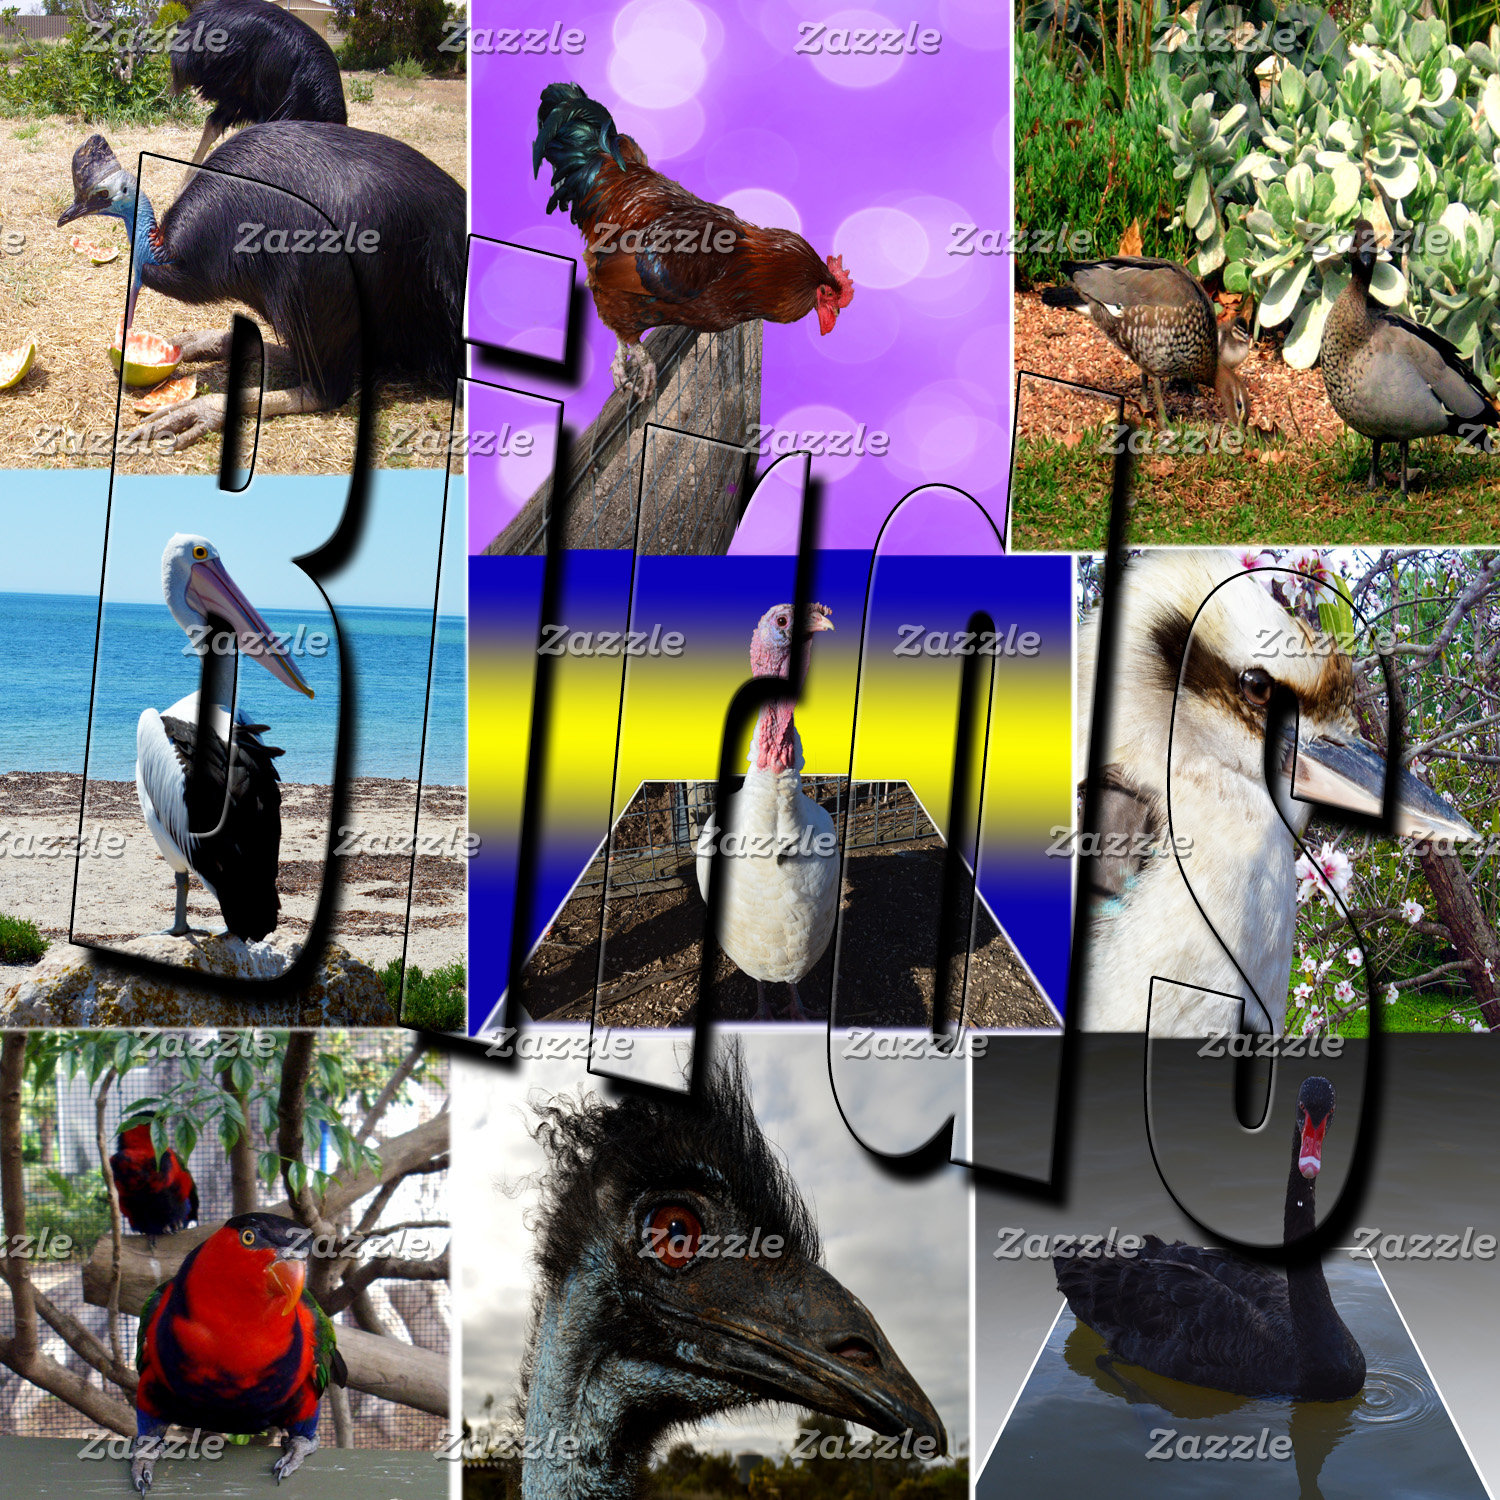 Birds, Emus, Chickens, Swan, Products